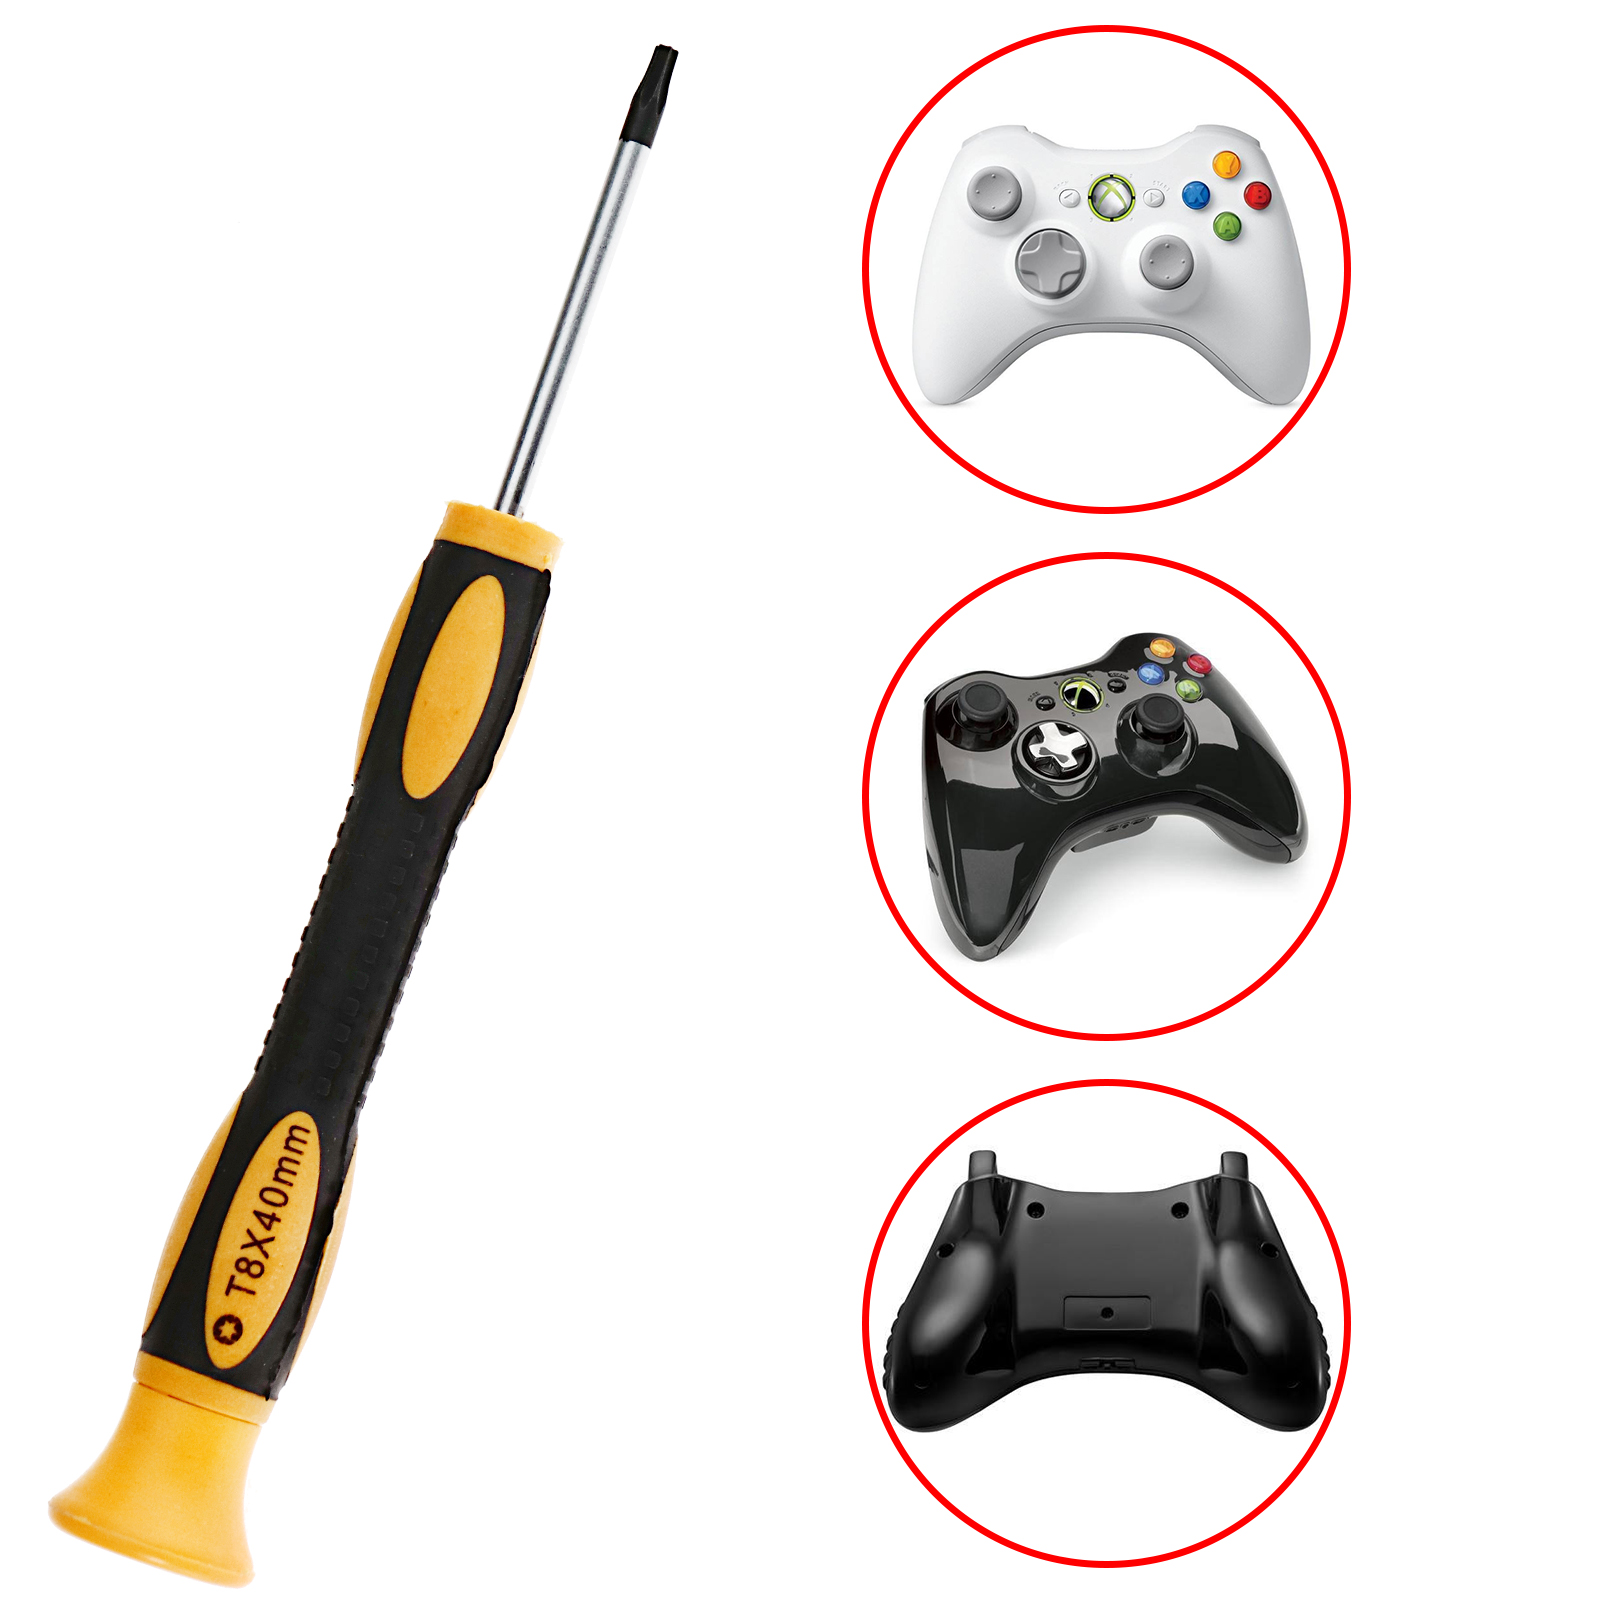 Details about T8 PLAYSTATION 4 XBOX ONE CONTROLLER SECURITY TORX PS3 XBOX  360 SCREWDRIVER